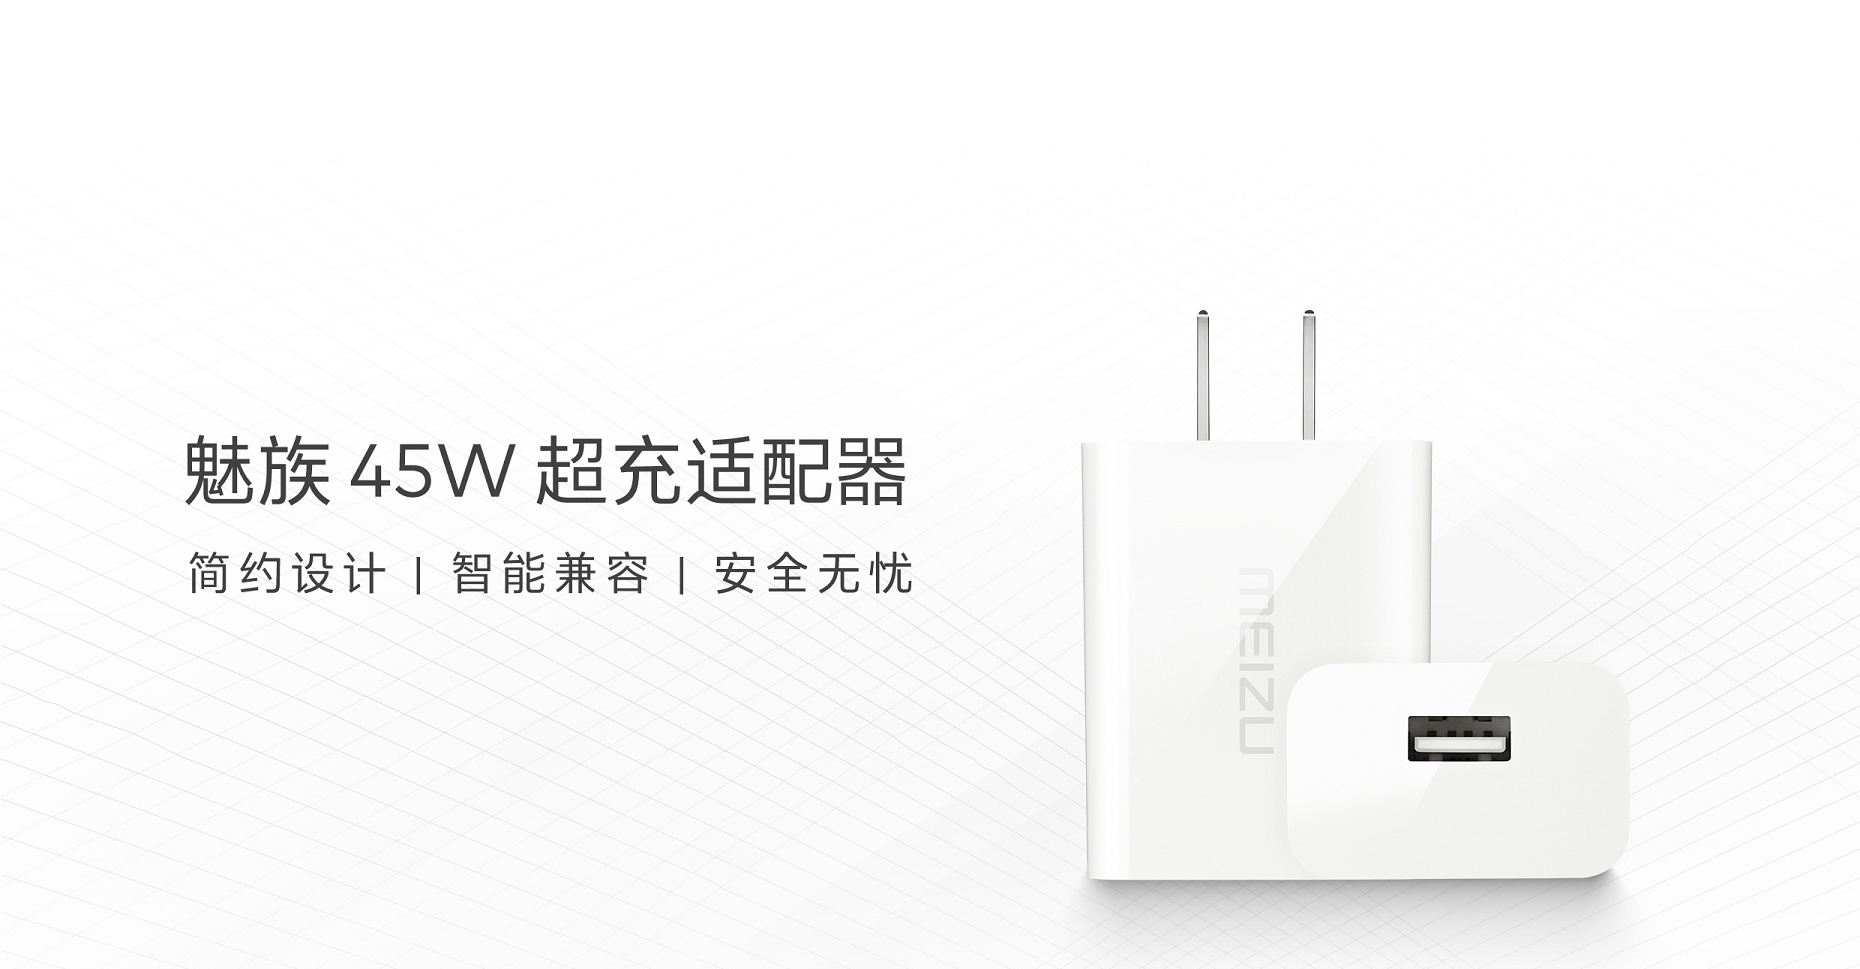 MEIZU Super Charger 45Wを発表、Quick Charge 3+やMediaTek Pump Expressに対応